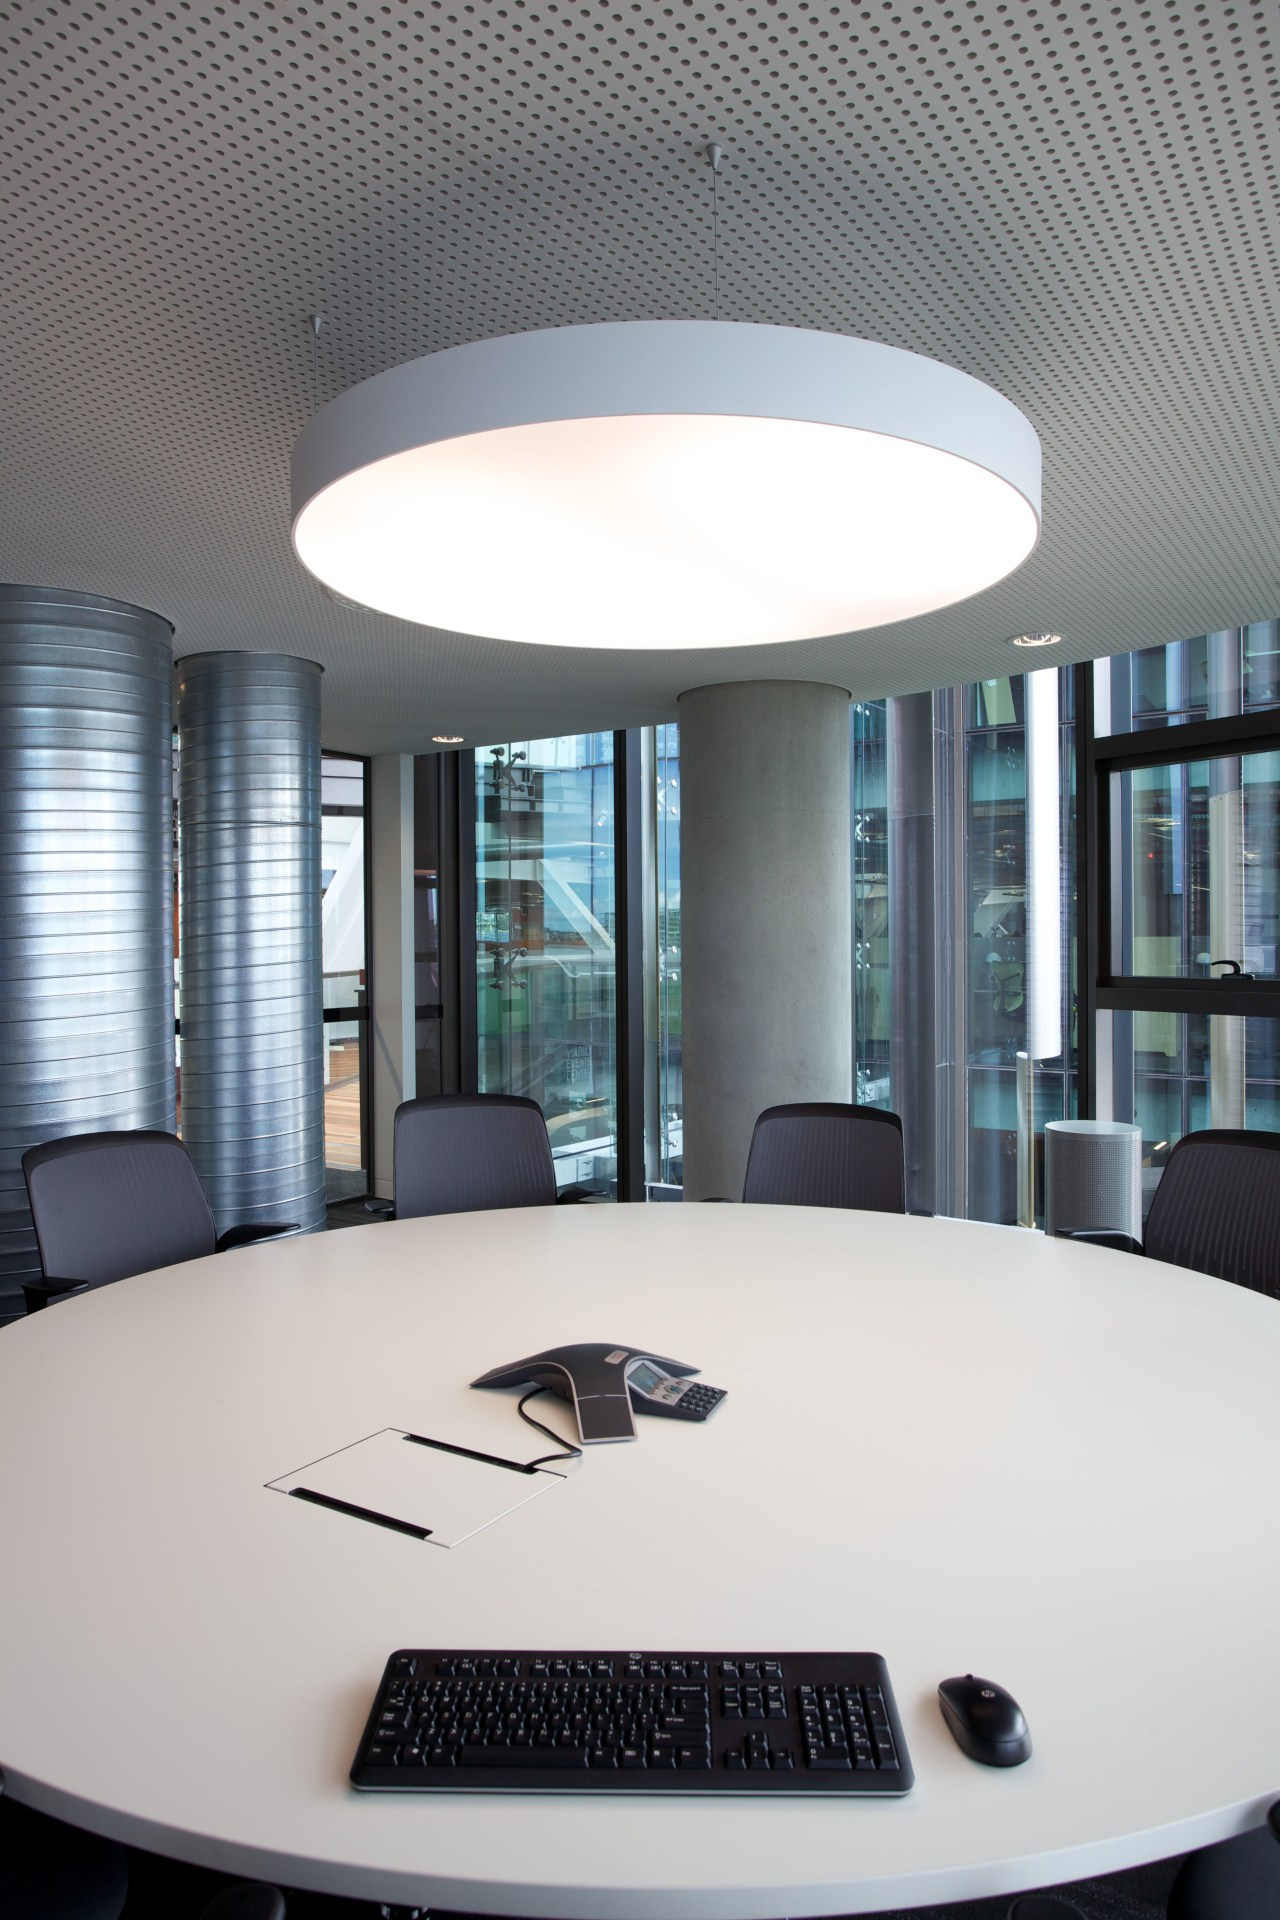 lighting by Aesthetics LIghting was custom designed for architecture, ceiling, daylighting, furniture, interior design, office, product design, table, white, gray